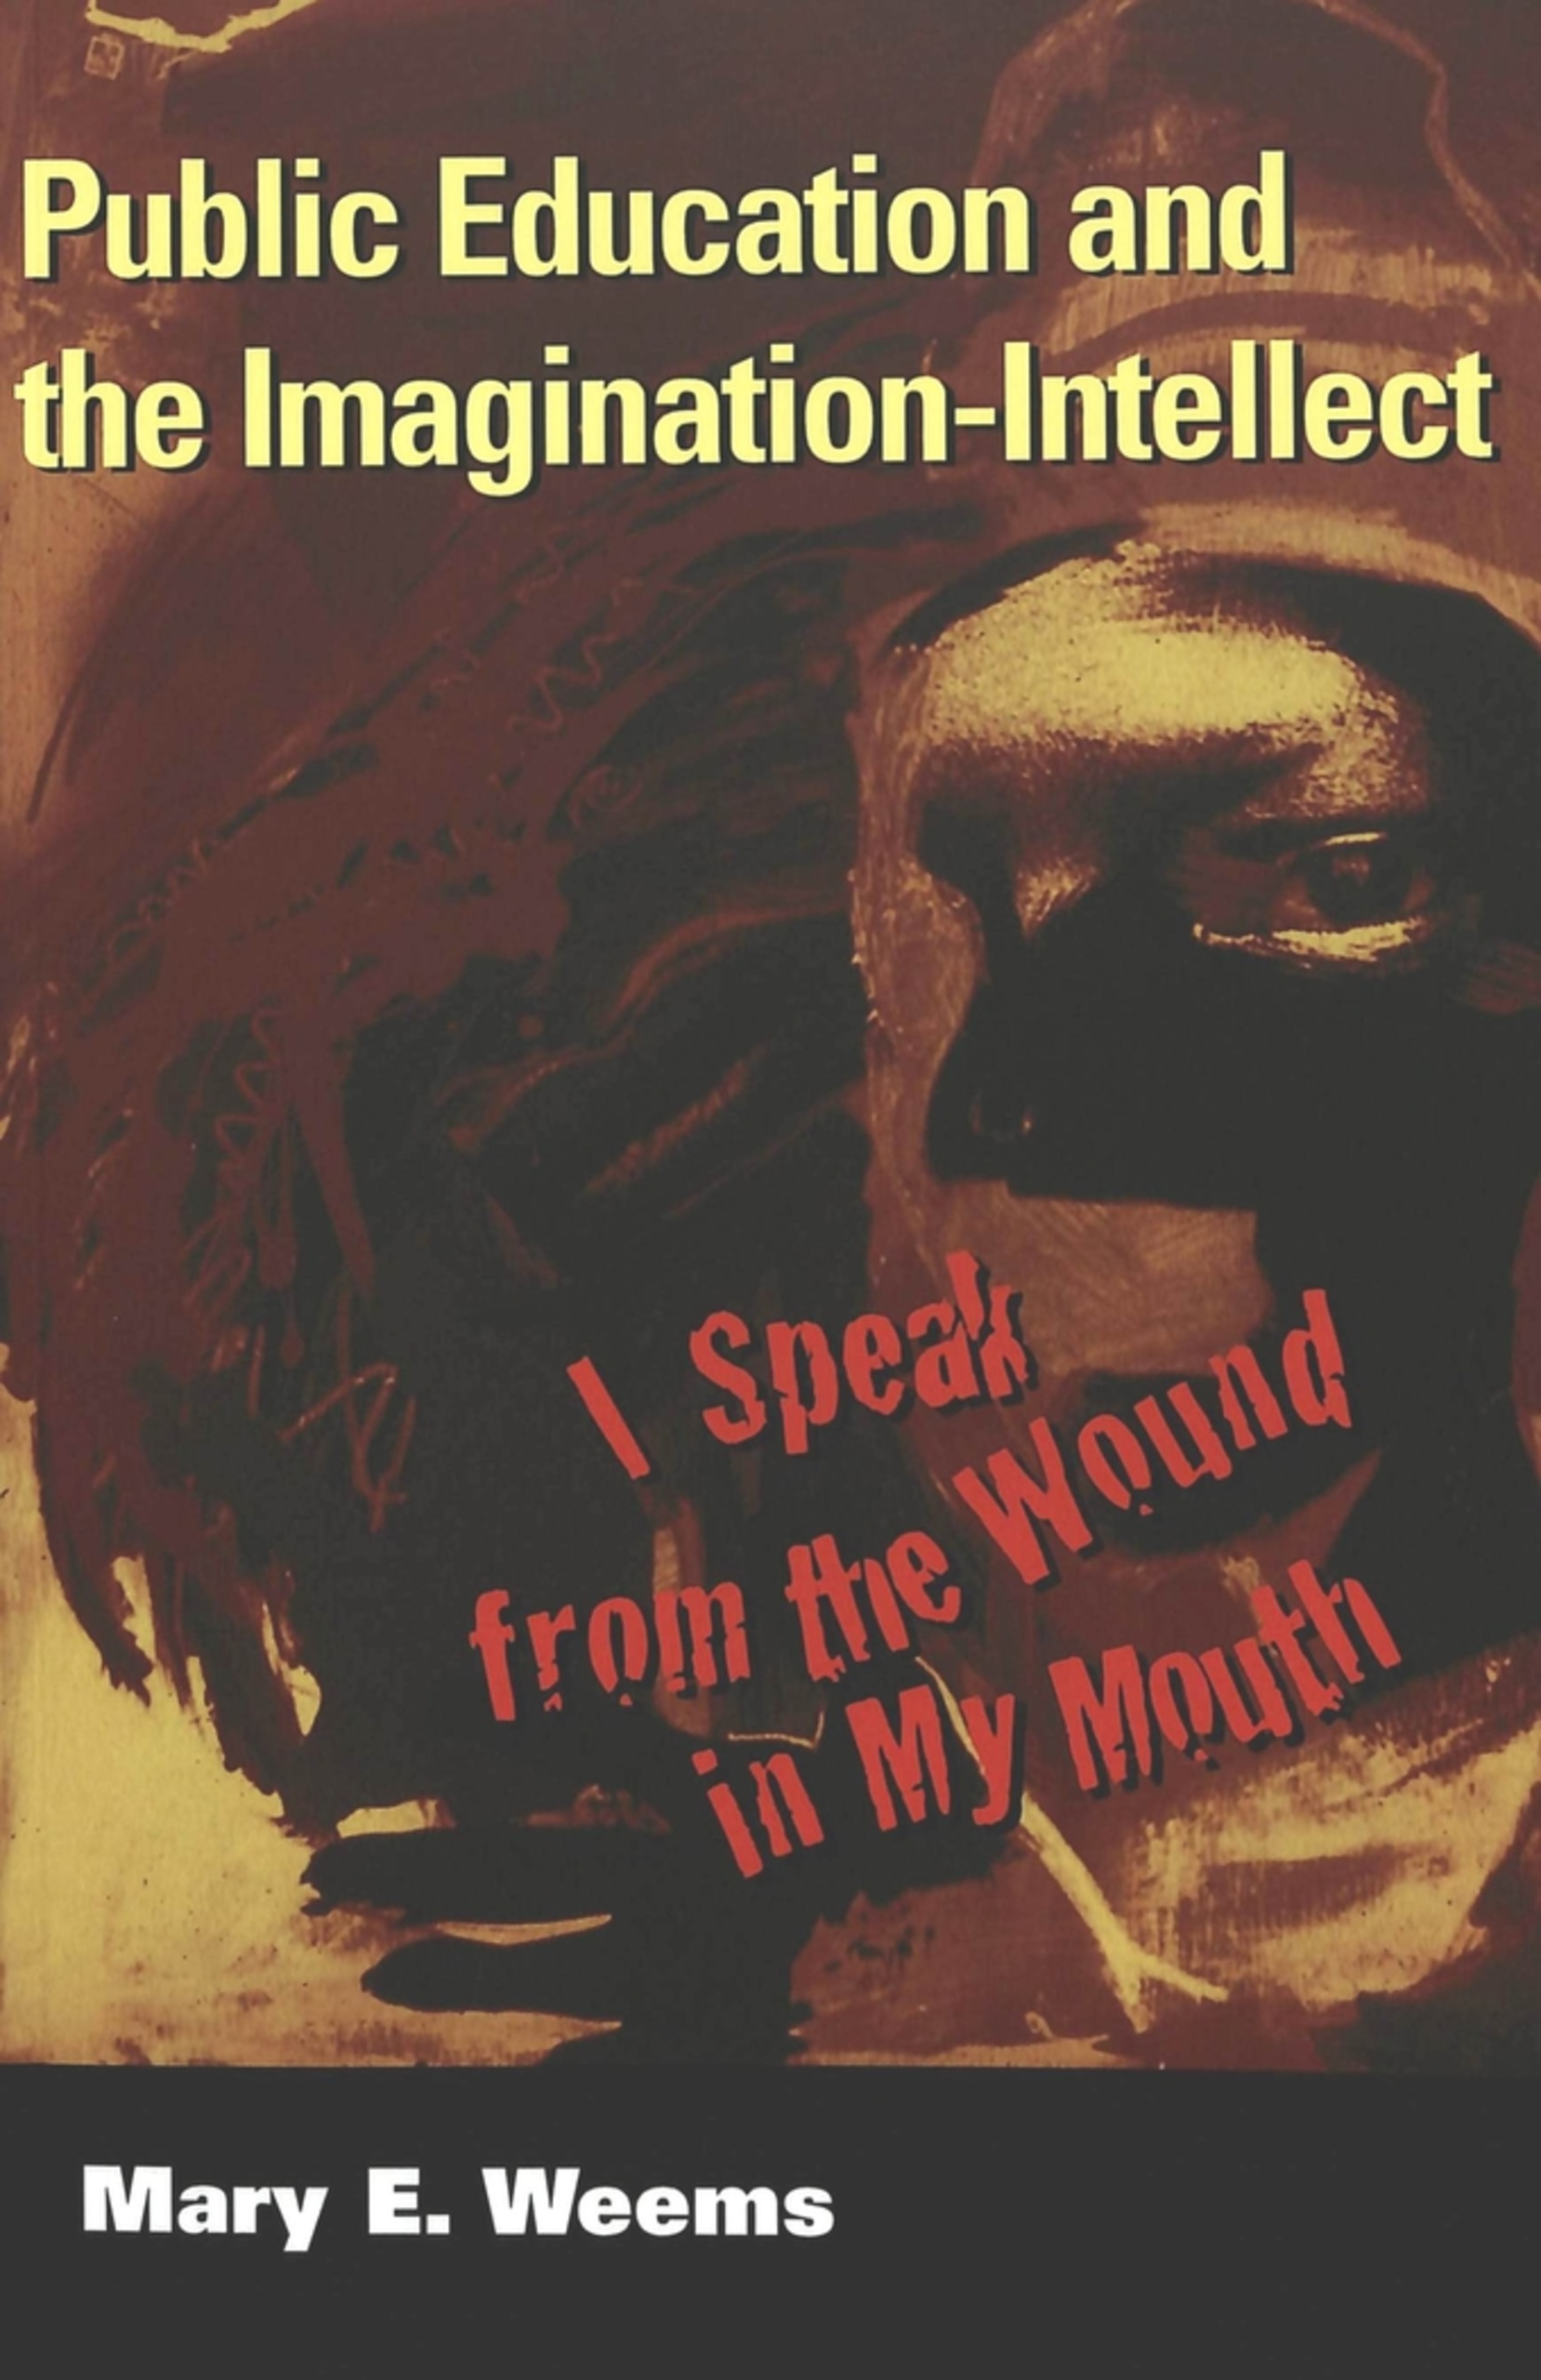 Title: Public Education and the Imagination-Intellect